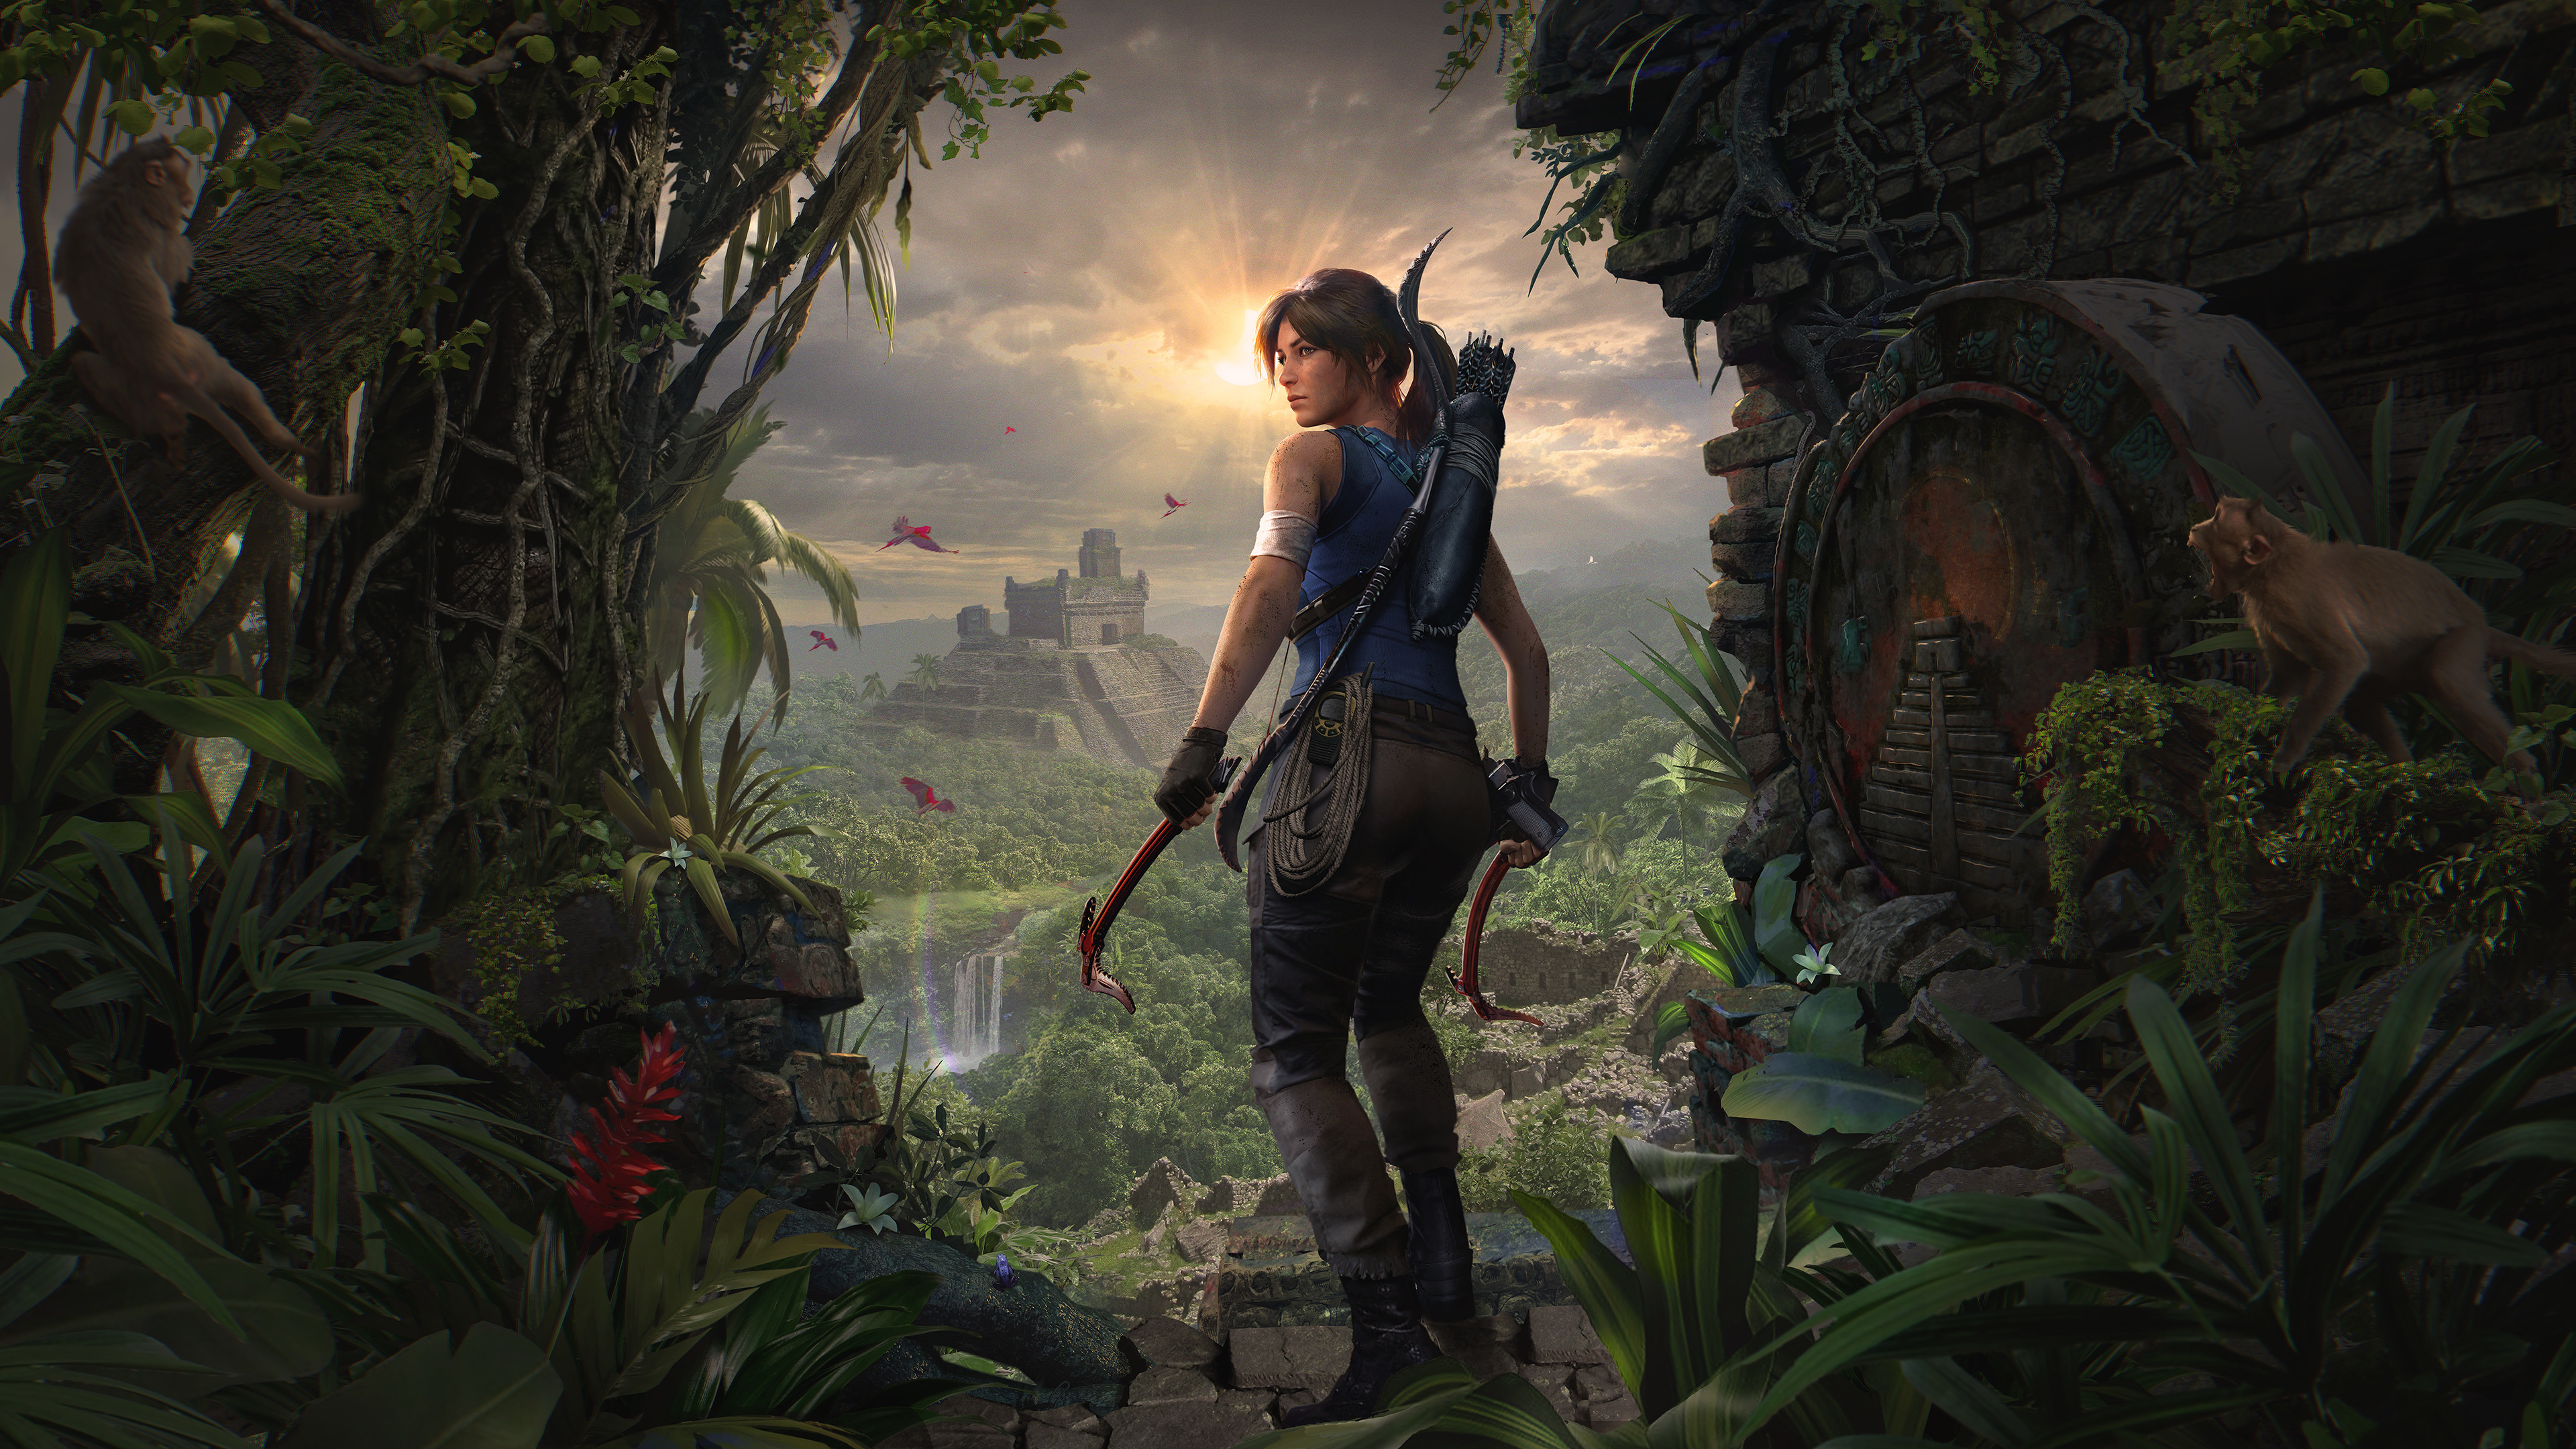 Shadow Of The Tomb Raider Definitive Edition , HD Wallpaper & Backgrounds